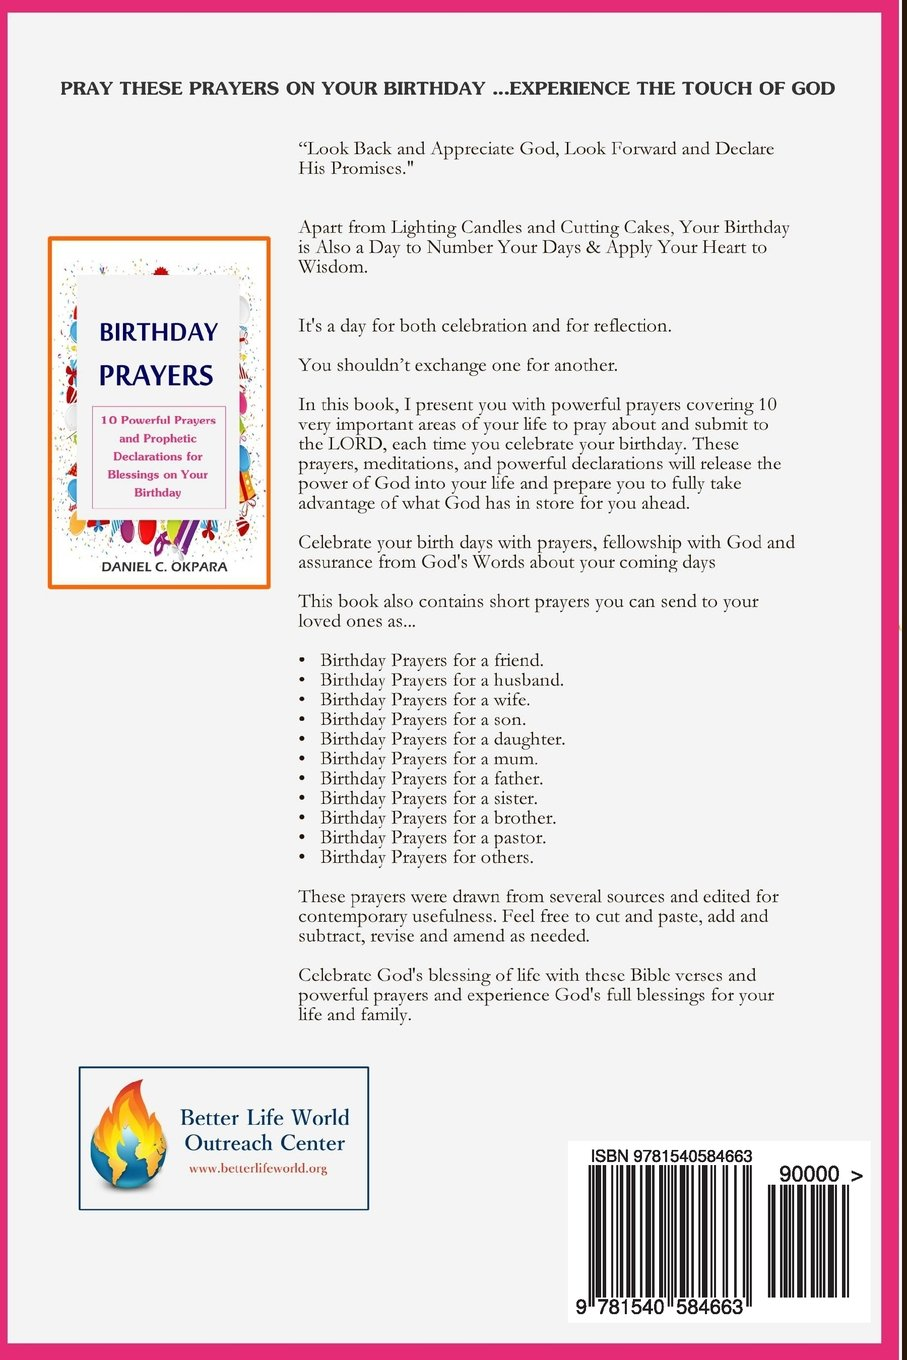 Birthday Prayers Declaring Gods Promises Over The 10 Most Important Areas Of Your Life On Daniel C Okpara 9781540584663 Amazon